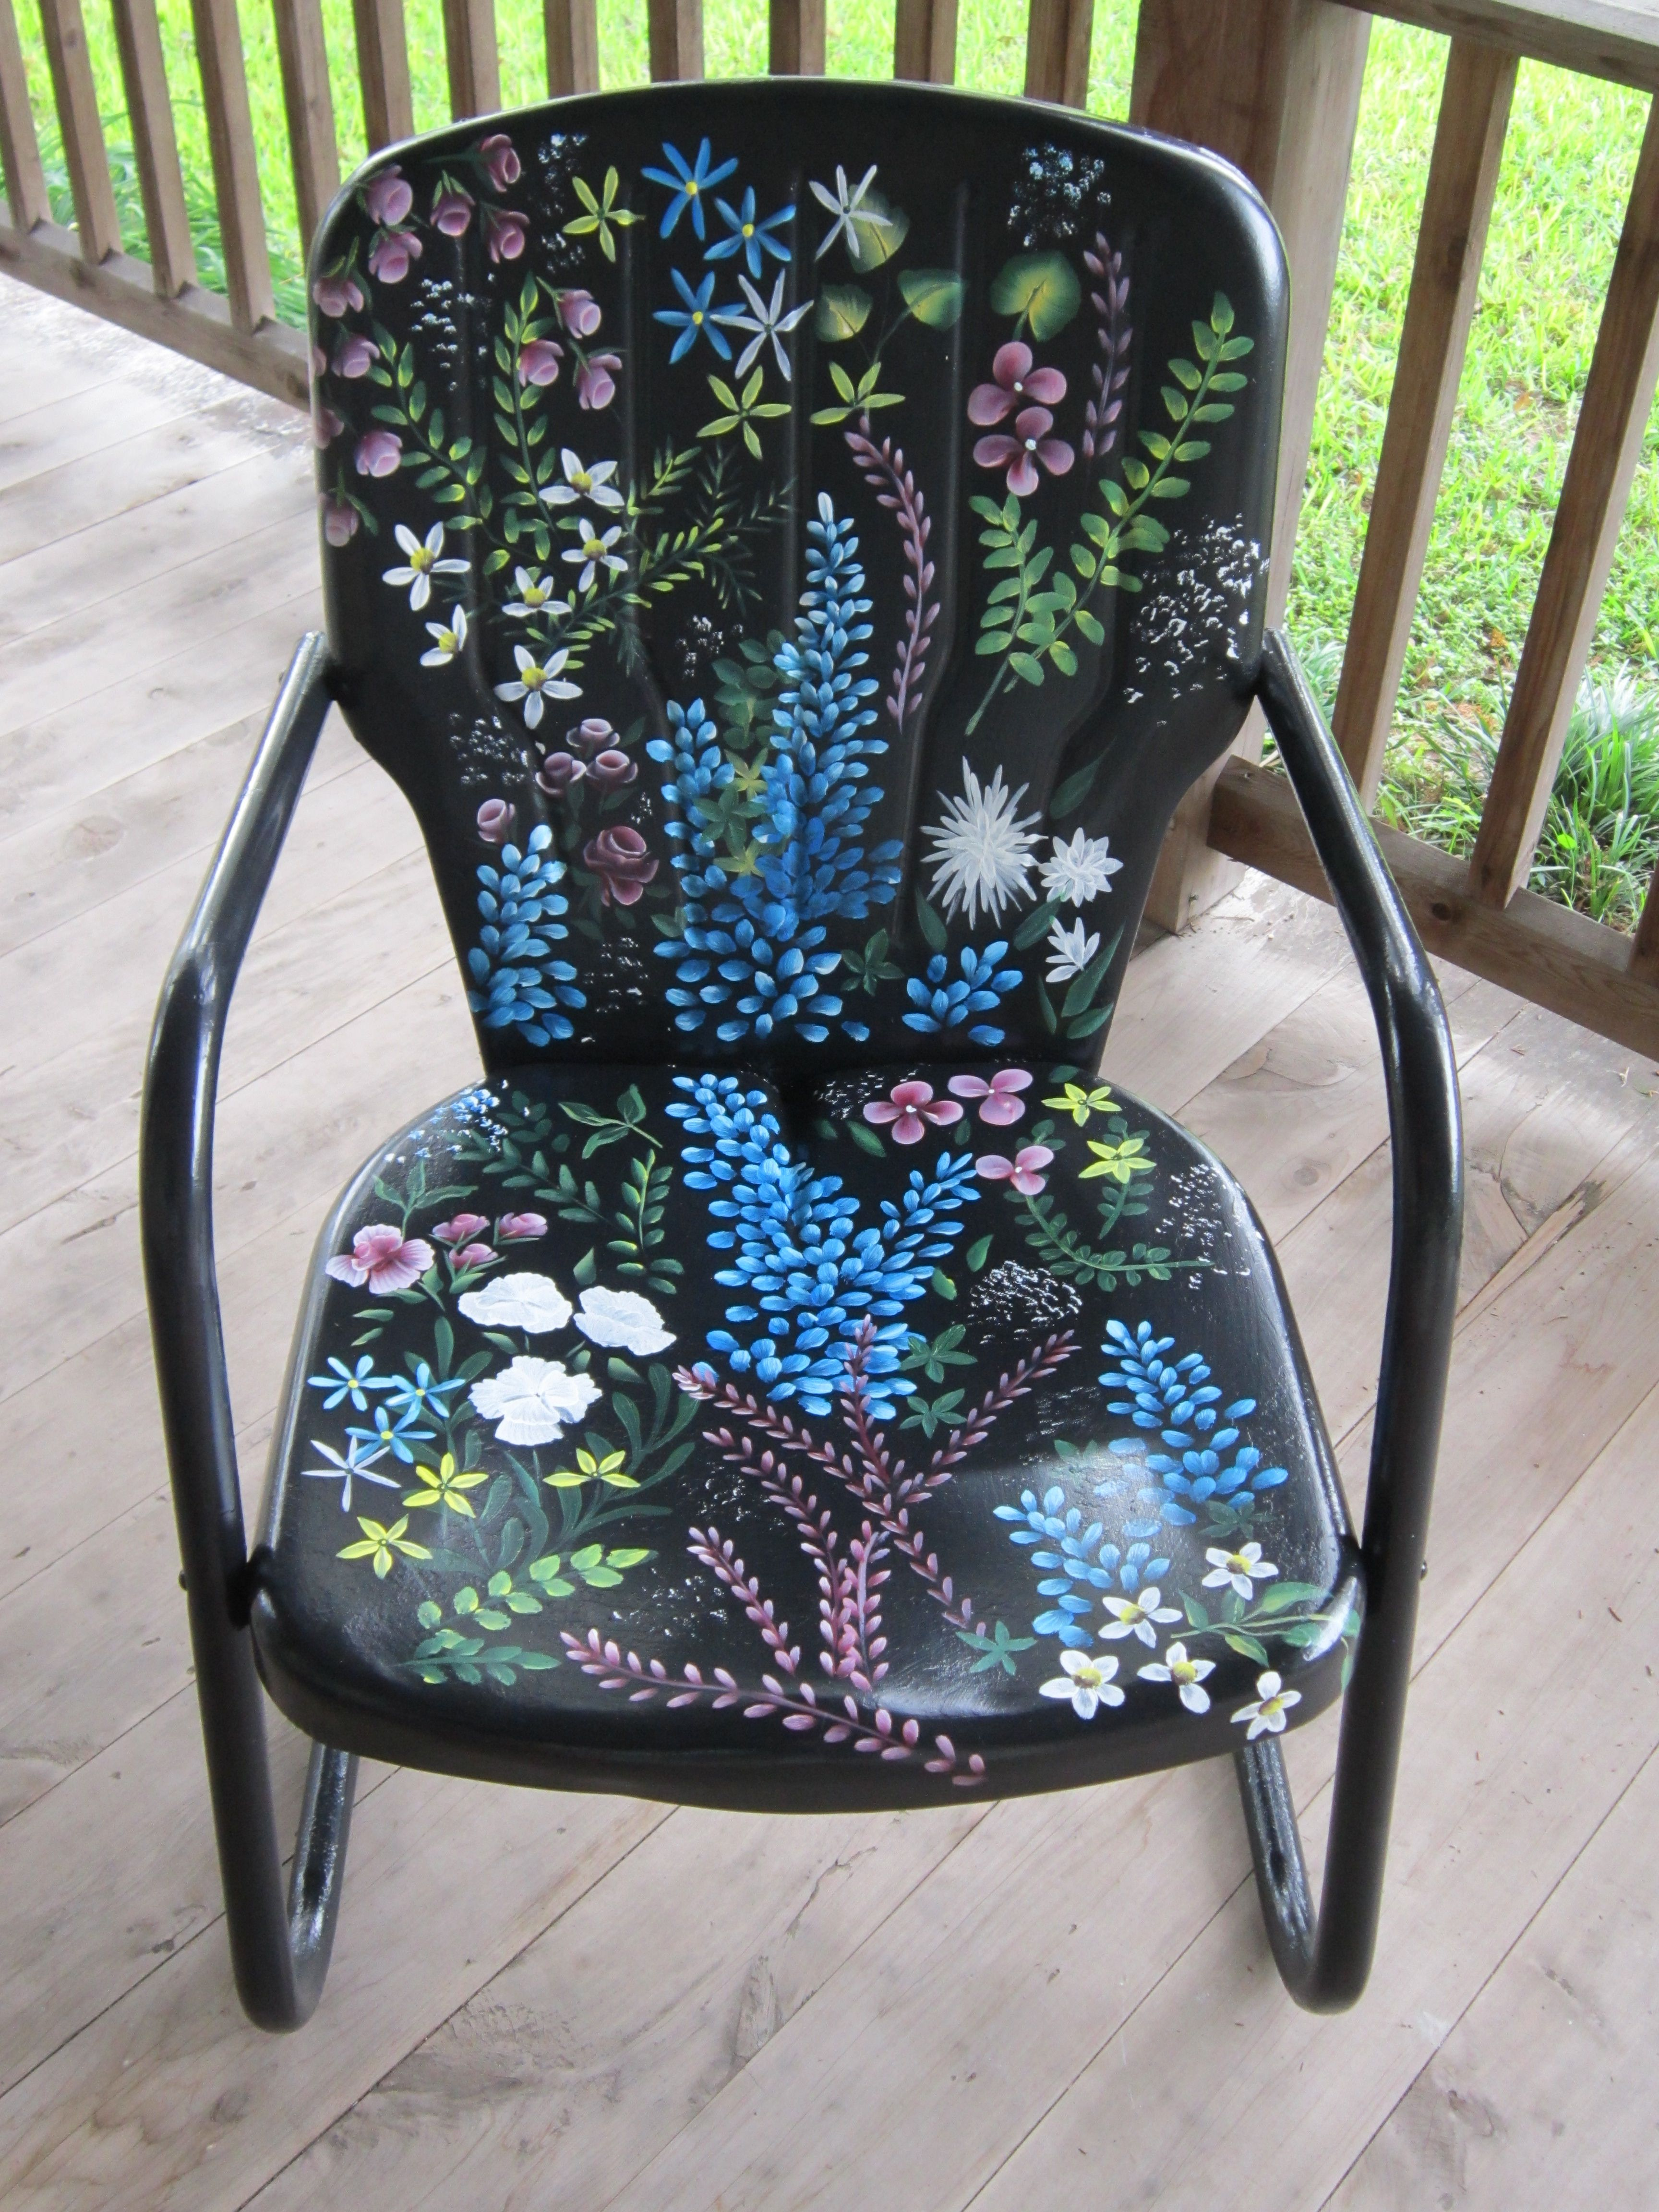 Love The Cool Paint Job On This Metal Lawn Chair! Visit The Artist: Http